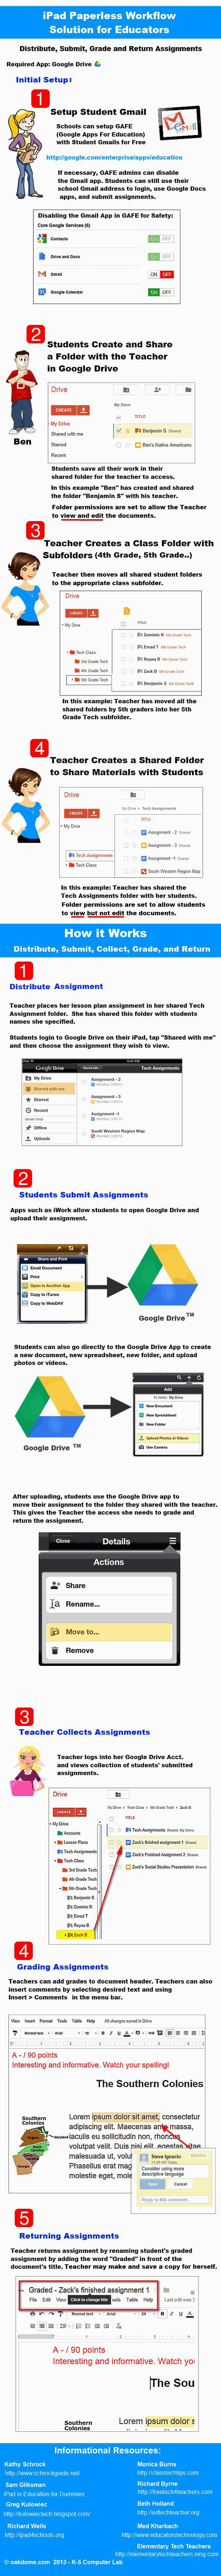 How To Create A Paperless Classroom With Your iPad #elearning #edtech #education